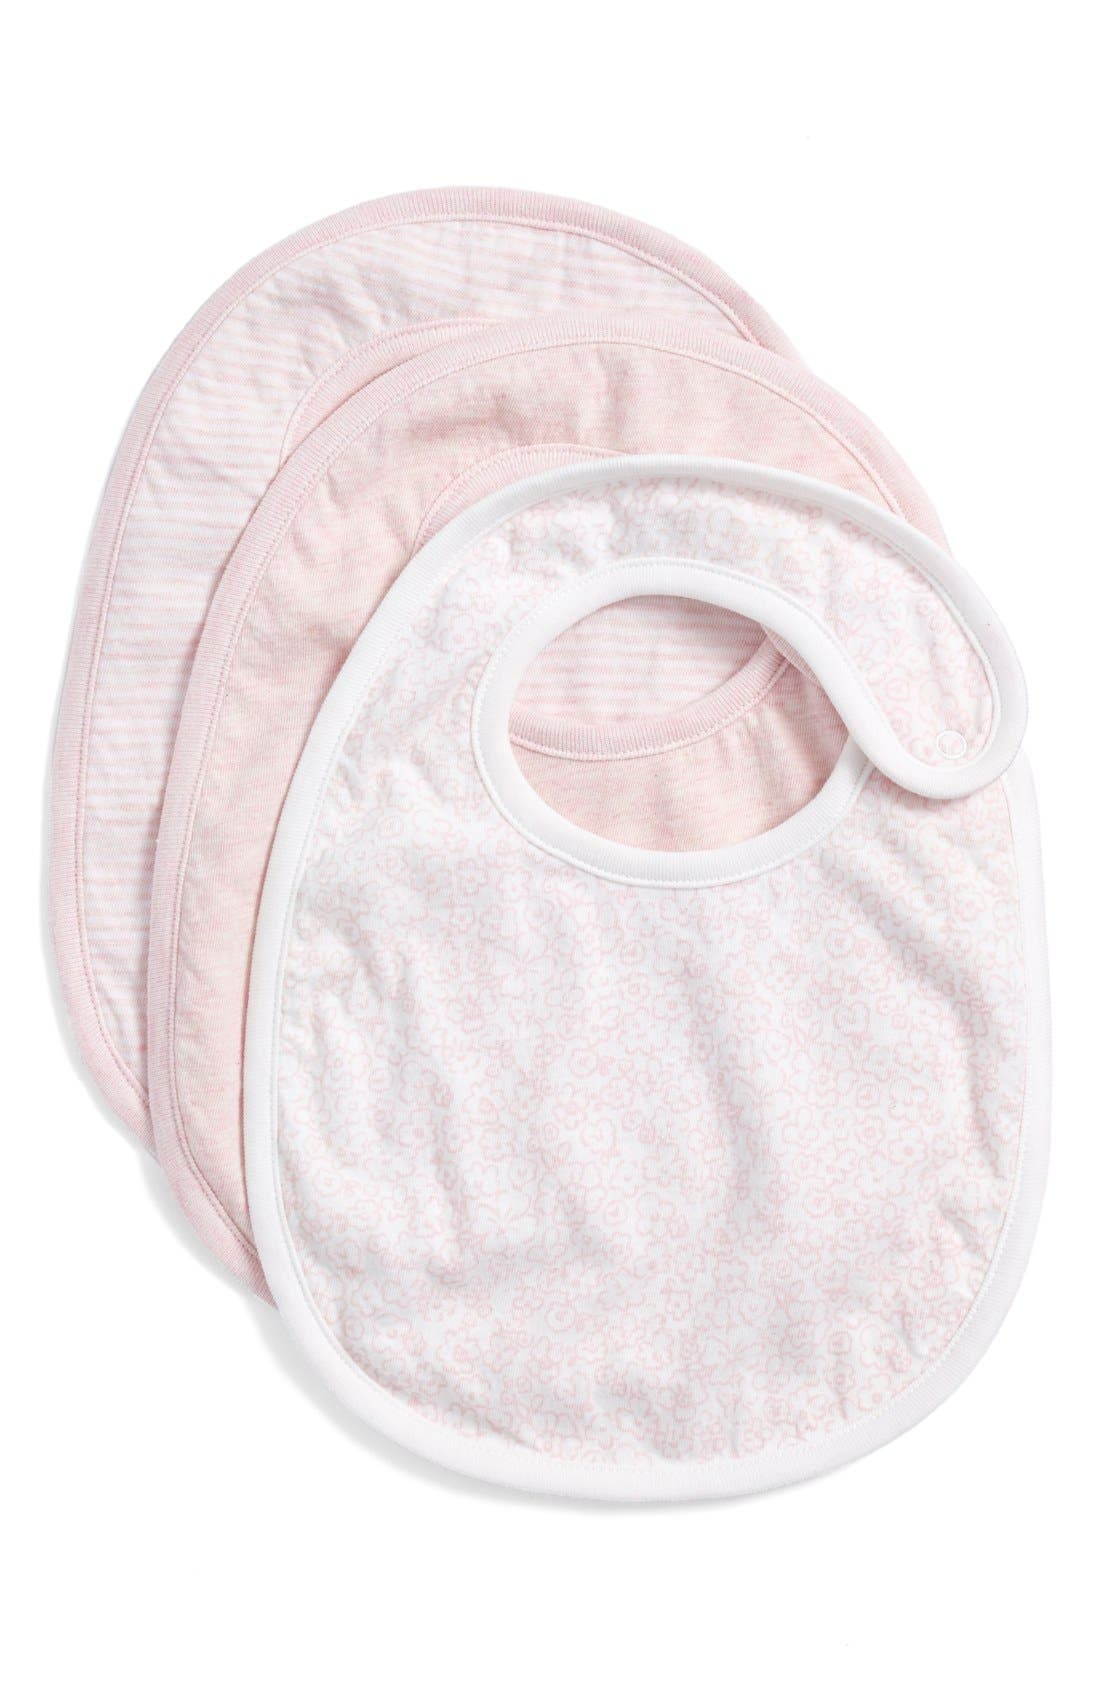 NORDSTROM BABY, Bibs, Main thumbnail 1, color, PINK BABY PACK